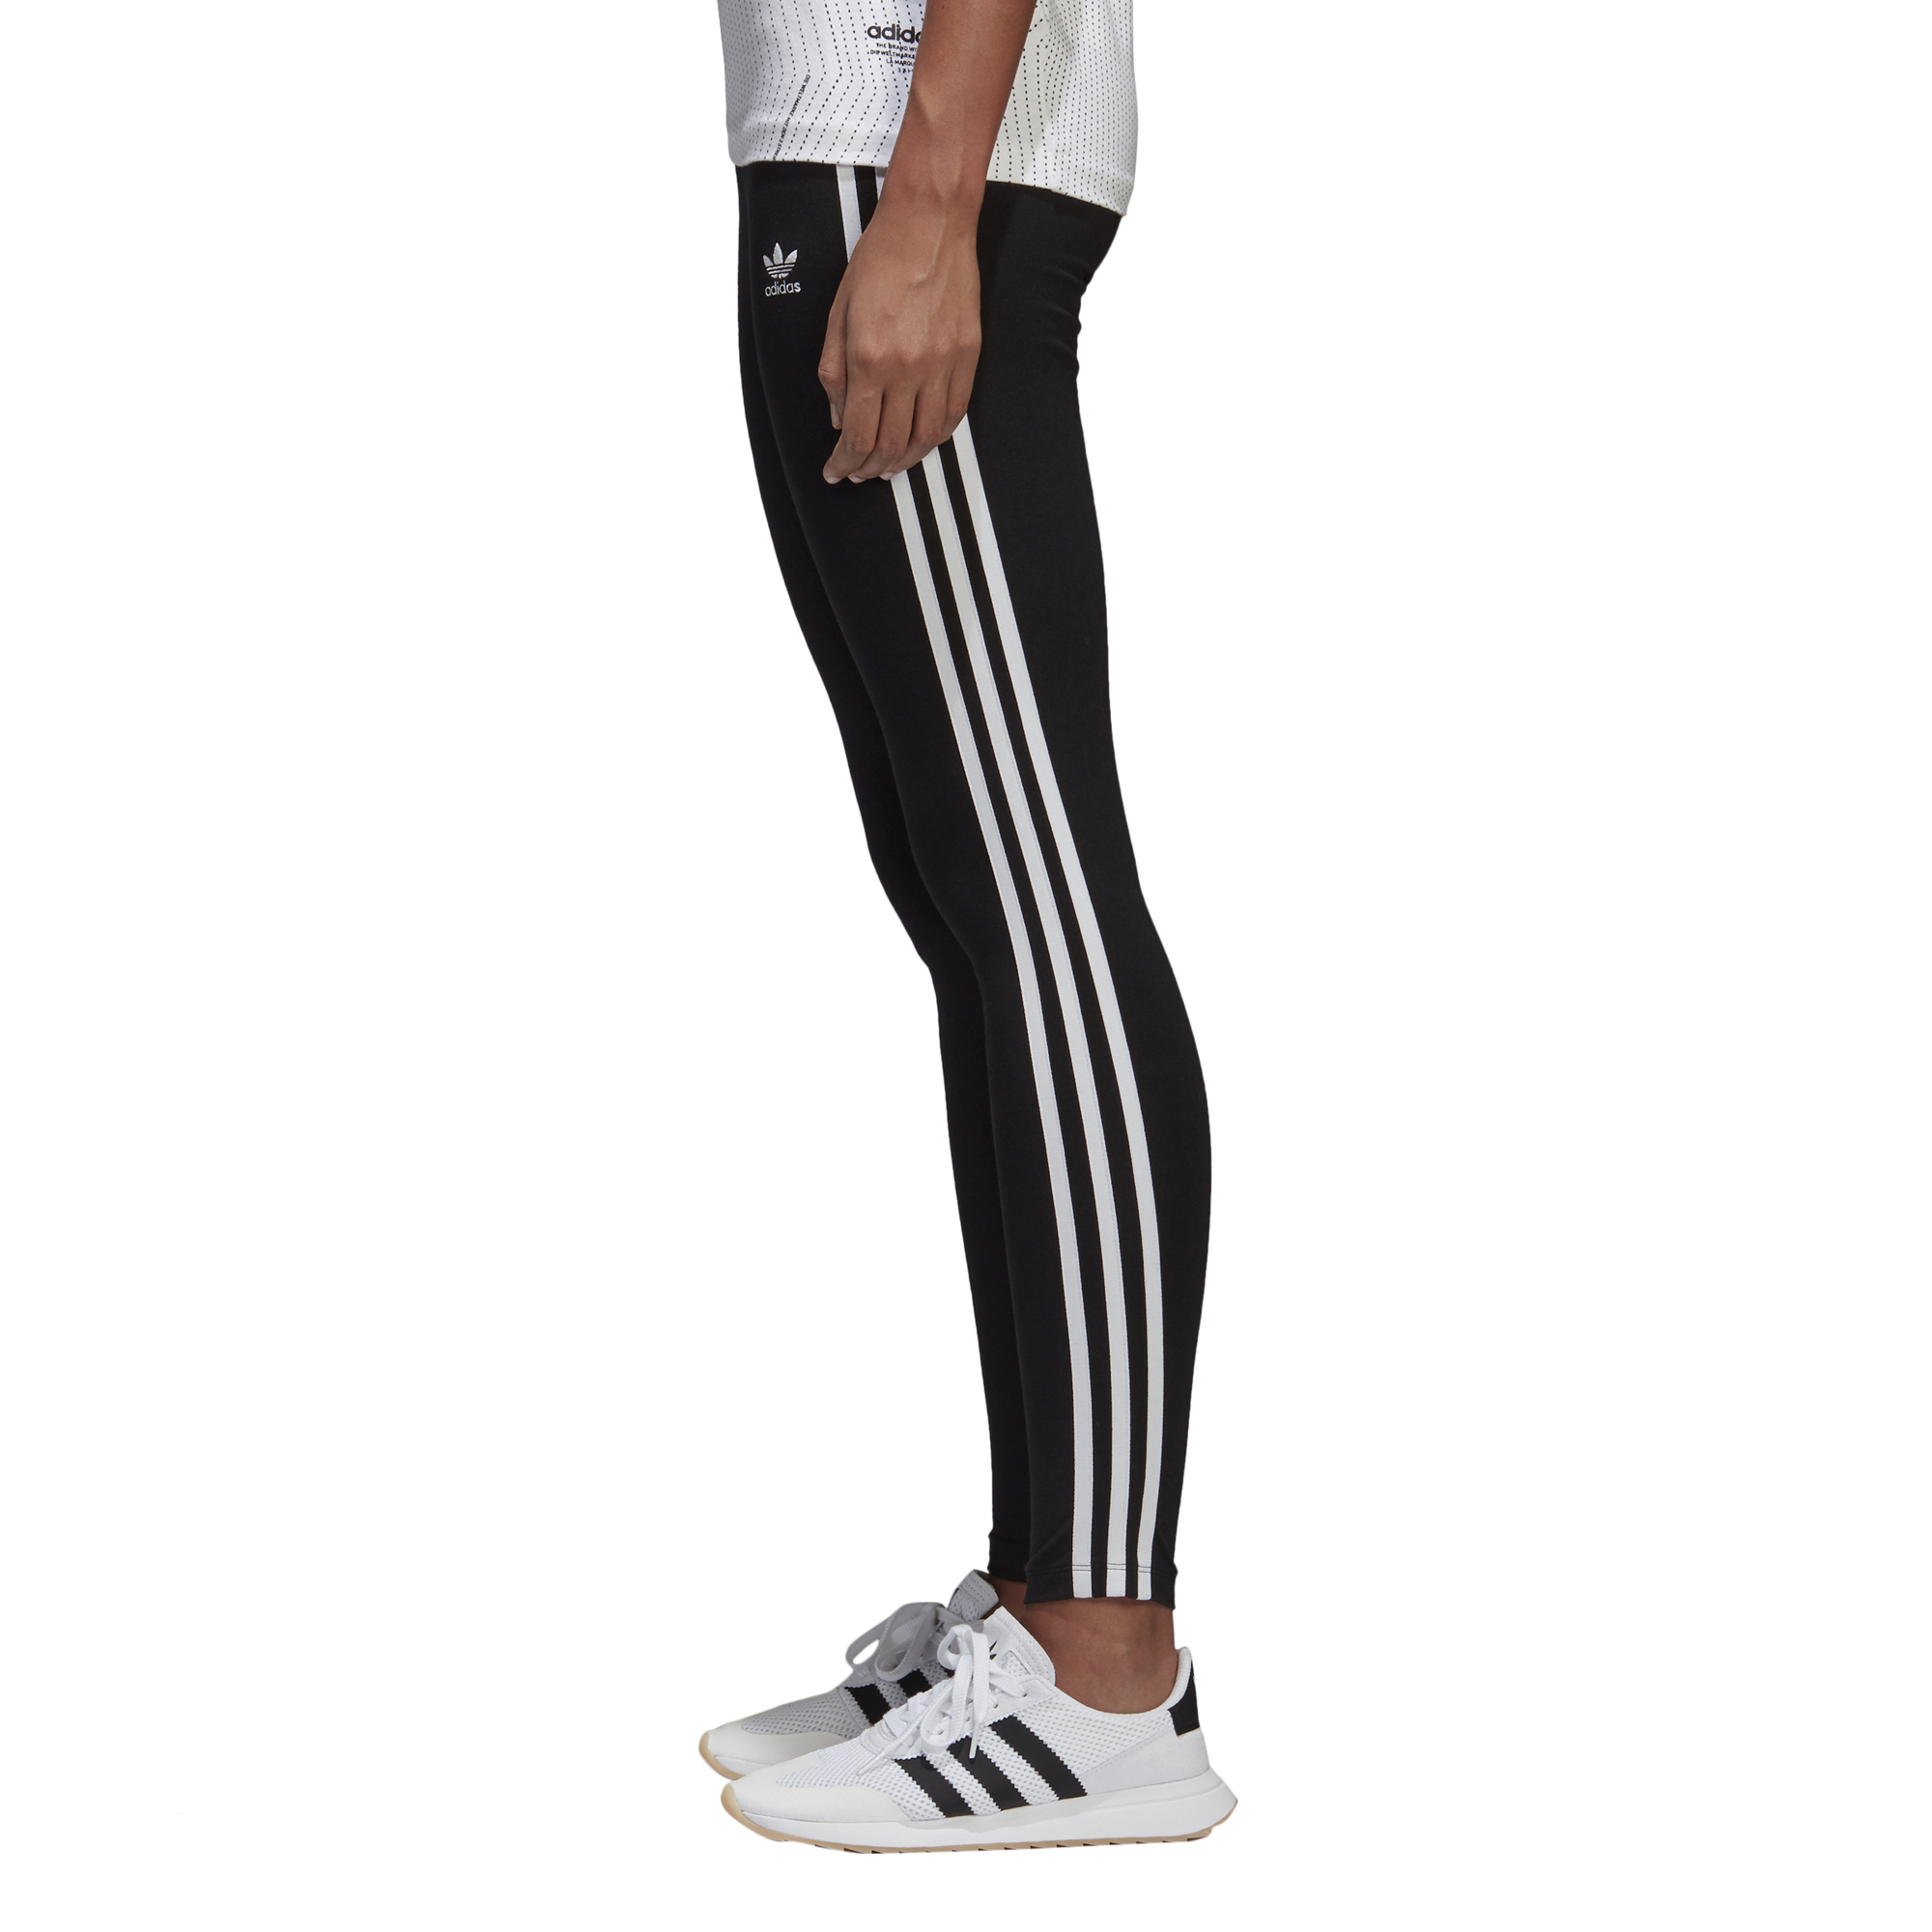 legginsy adidas 3 Stripes CE2441